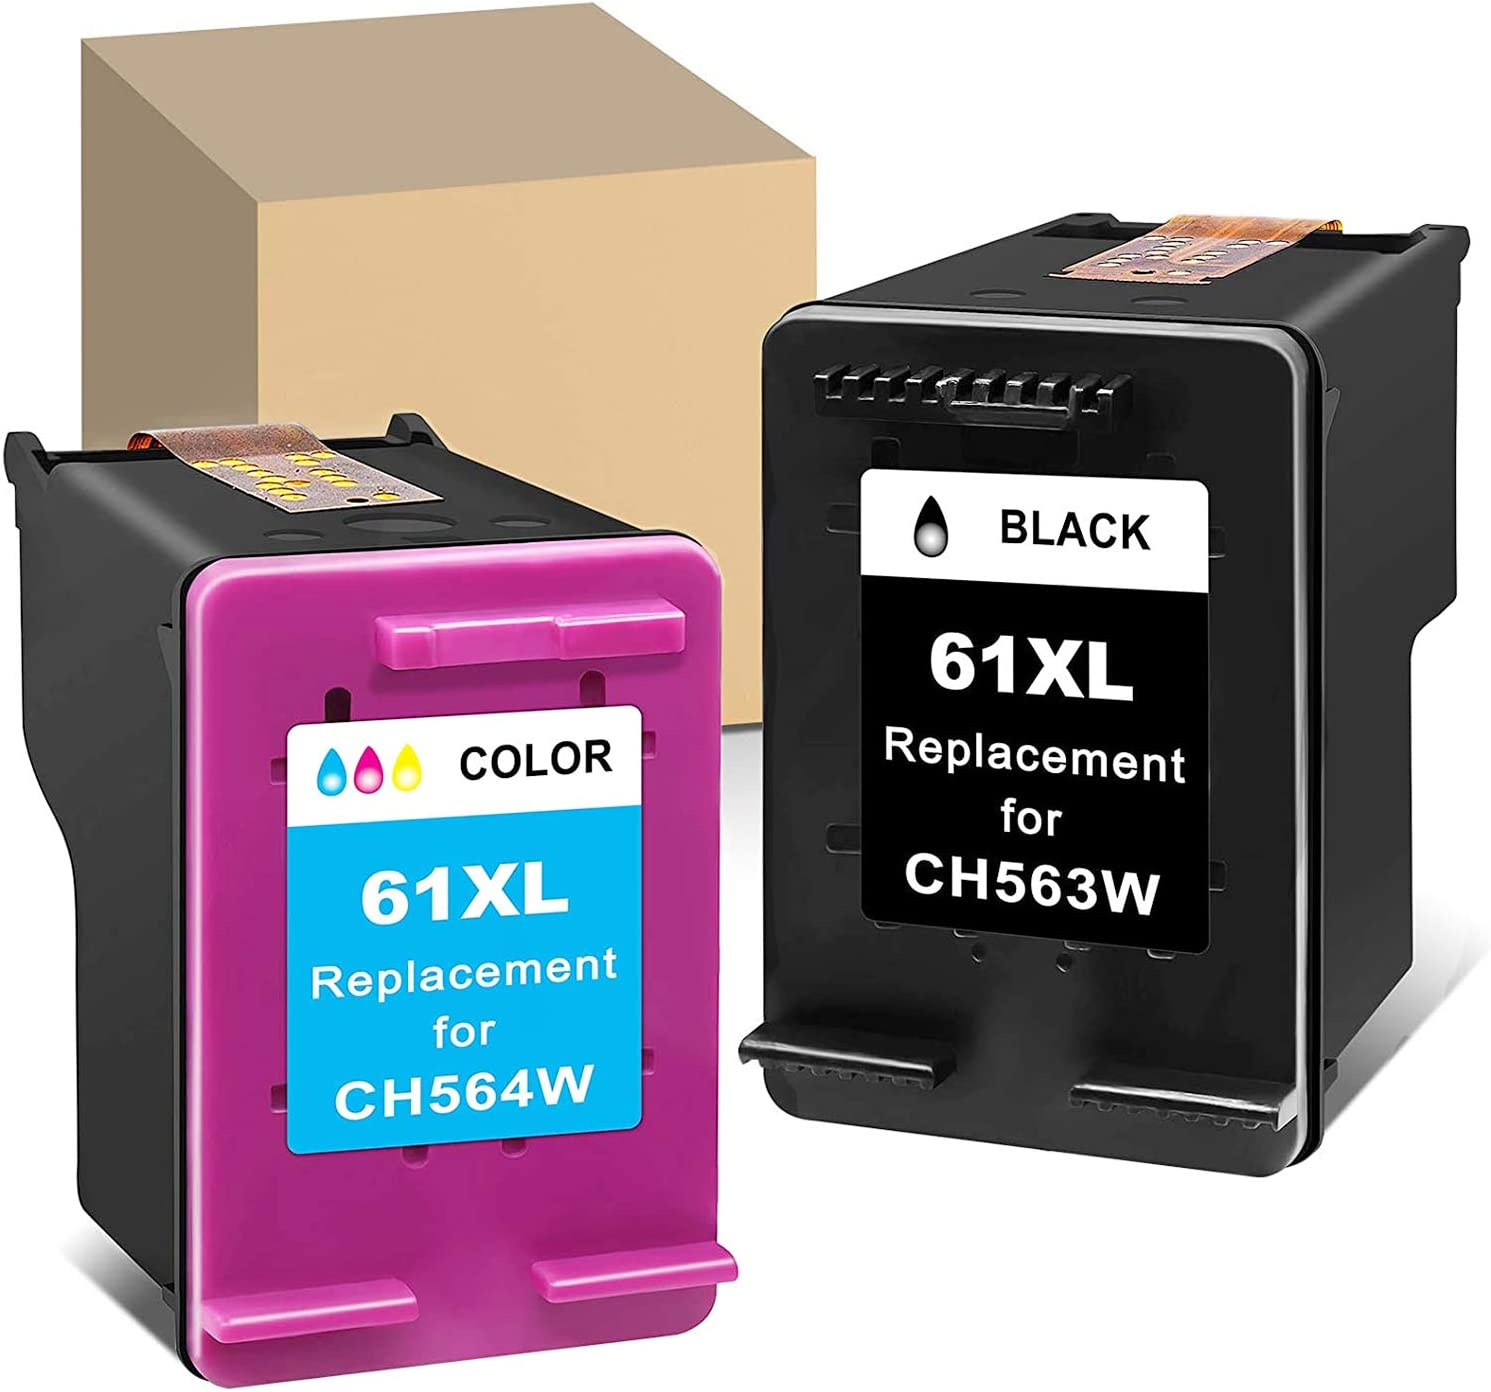 MaxPage Remanufactured Ink Cartridge Replacement for HP 61XL 61 XL Black Tri-Color to Use with Envy 4500 4502 5530 DeskJet 2512 1512 2542 2540 2544 3000 3052a 1055 3051a 2548 OfficeJet Printer, 2-Pack